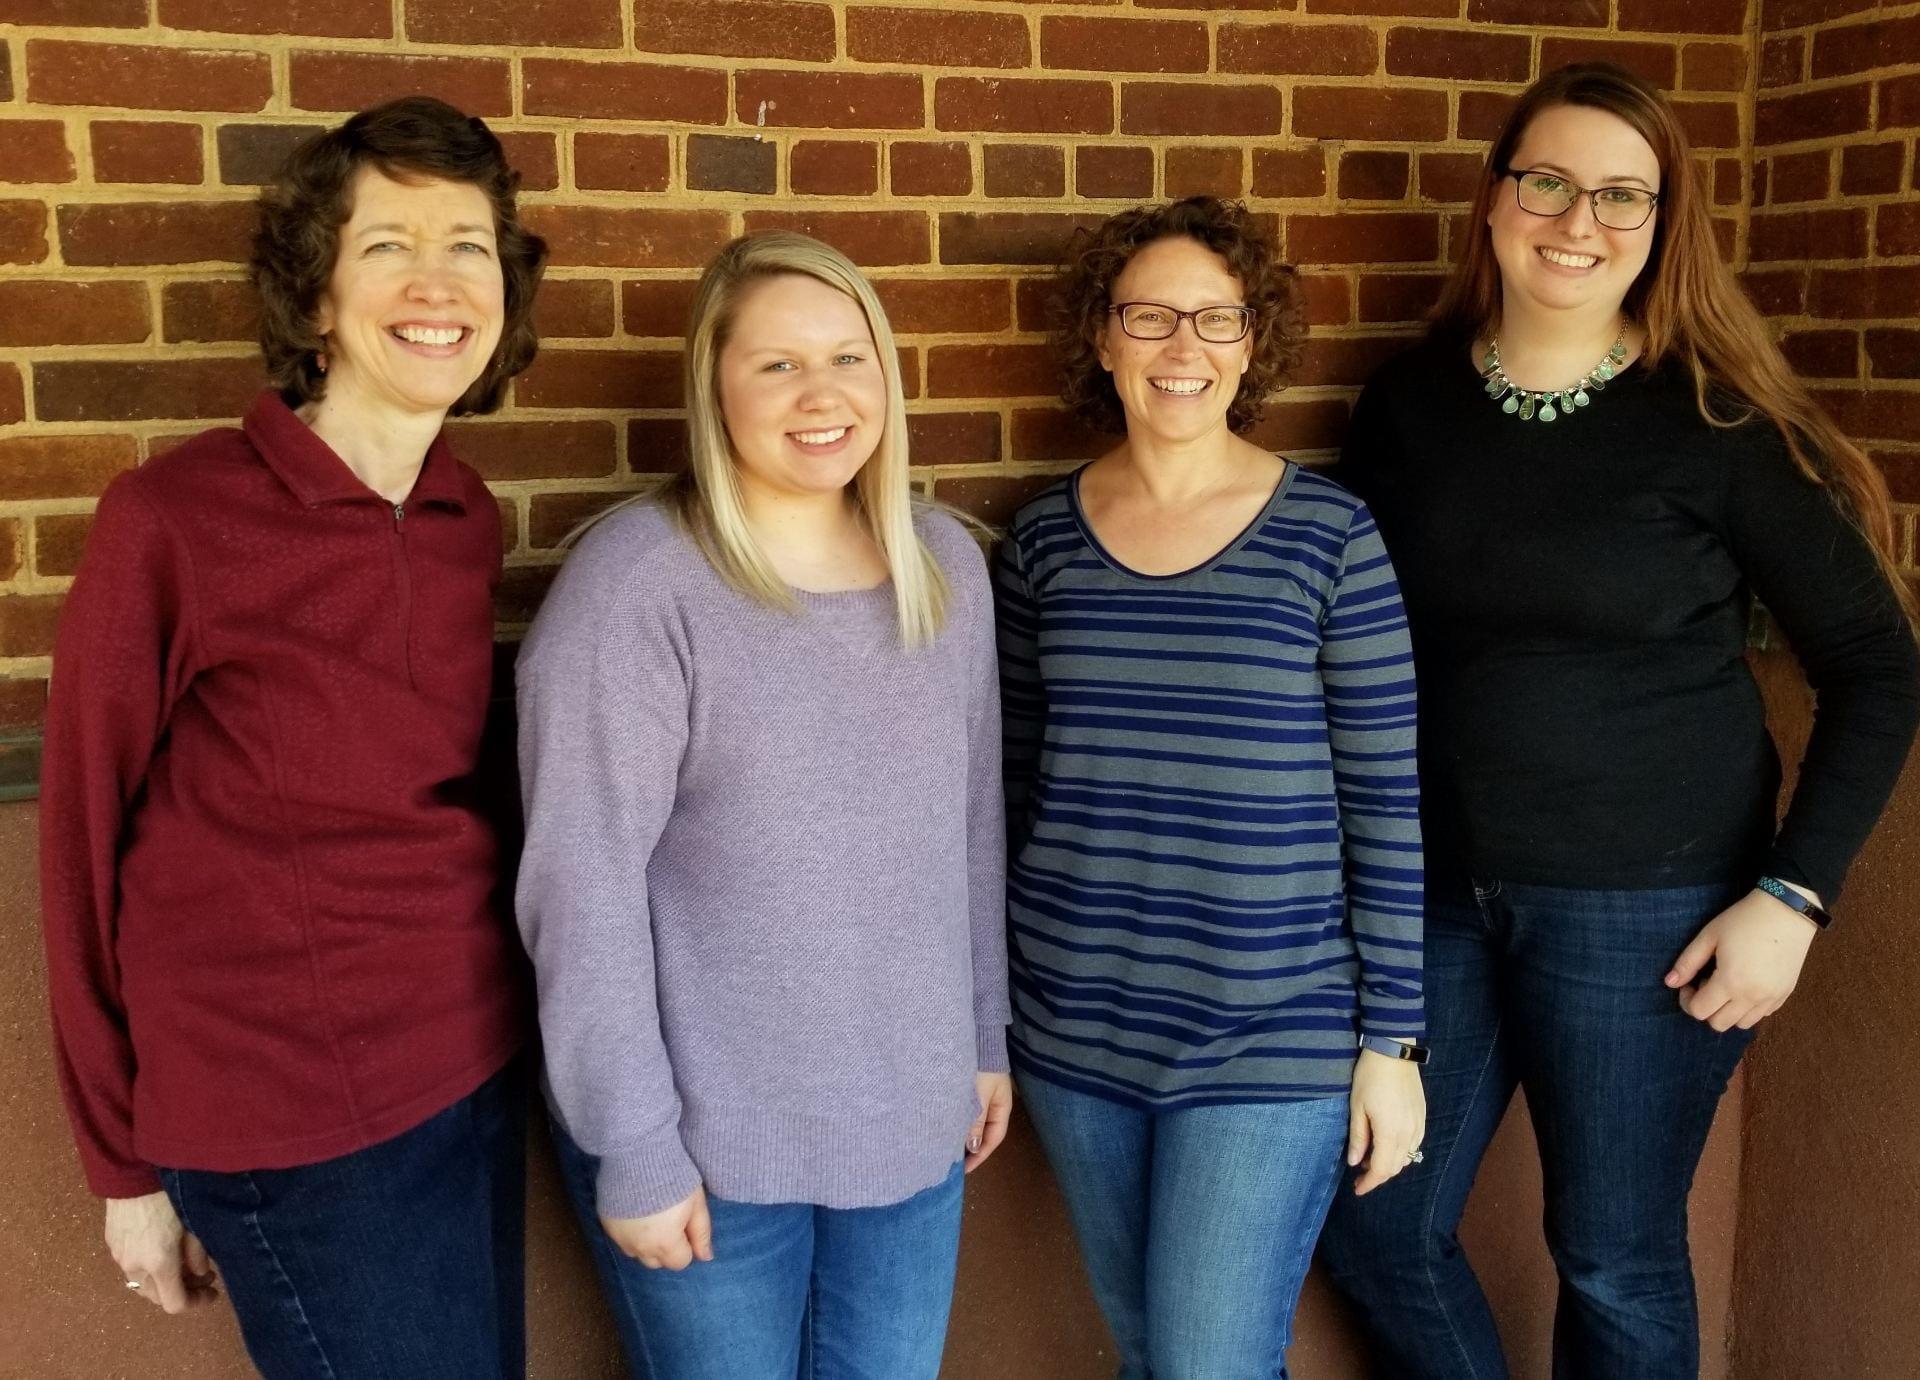 Pictured from left to right: graduate students Z. Qin, K. Clark, M. Savin; Dr. A. Shober; graduate student A. Soroka; and research associate M. Pautler. Not pictured: Dr. T. Sims, graduate student S. Riggi, and research technician S. Tingle.